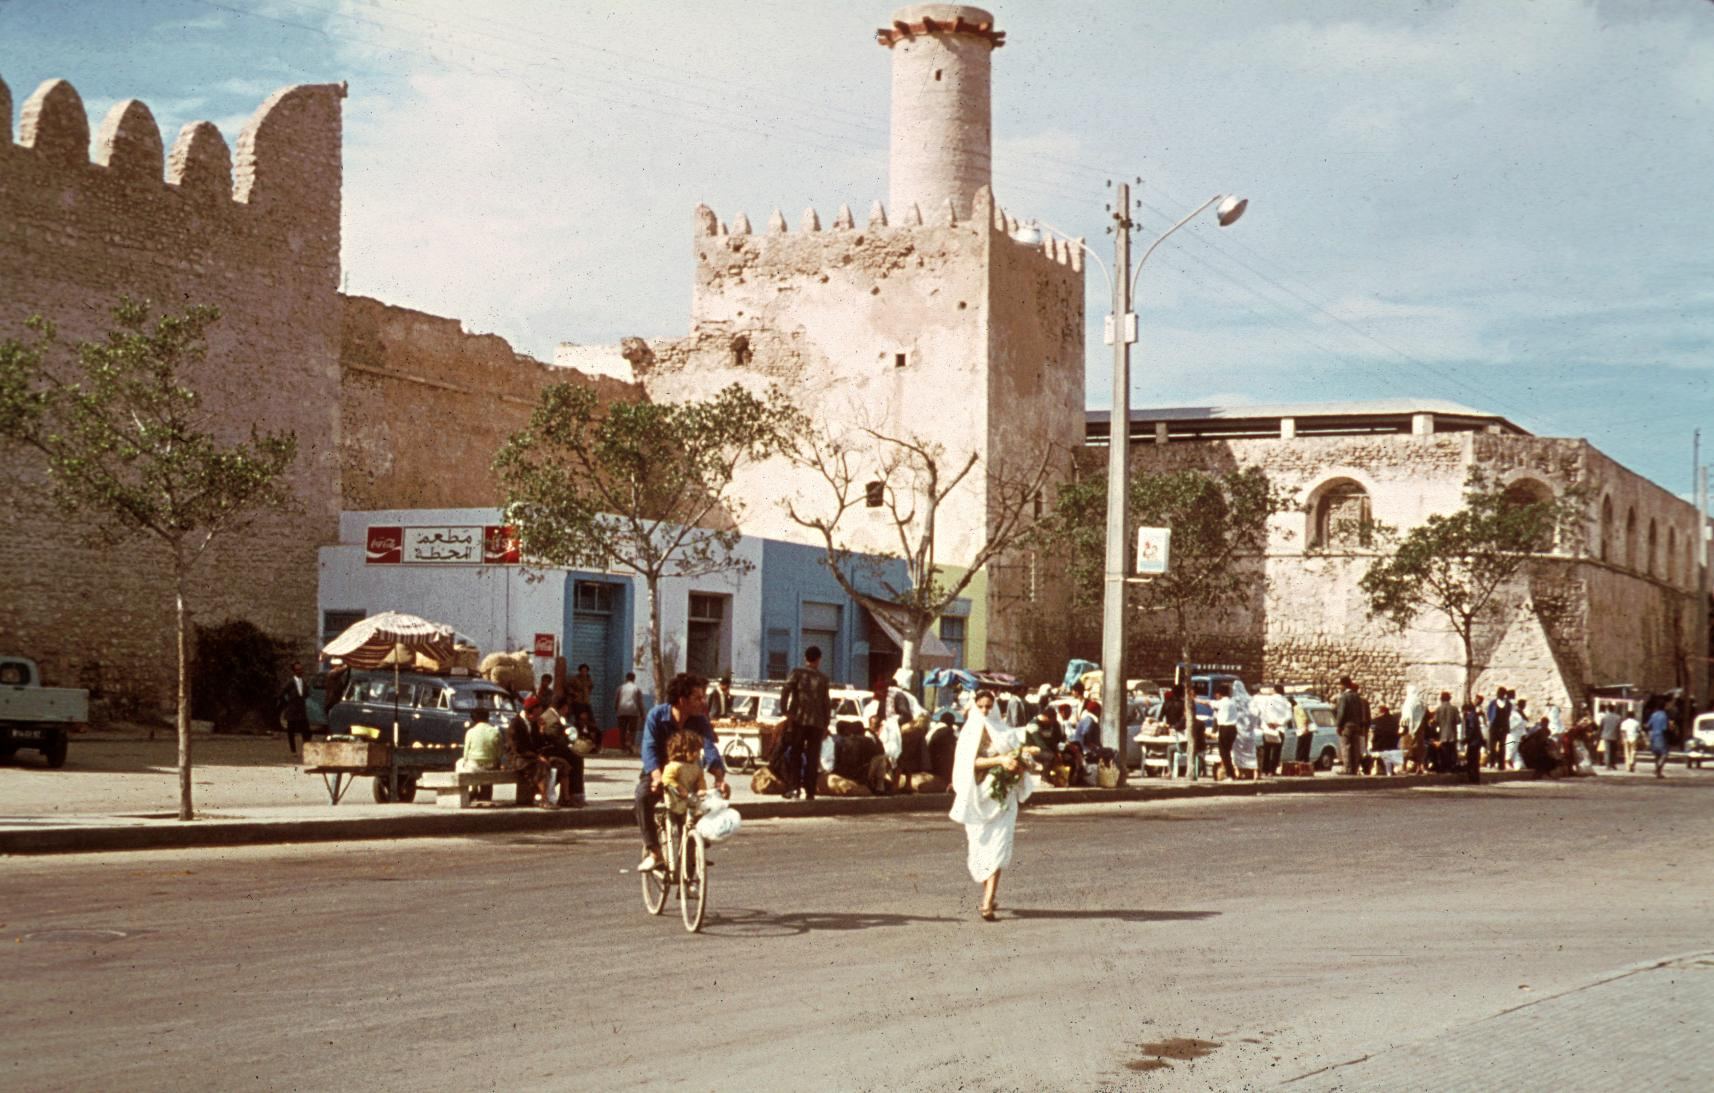 The Tourist Center of Sousse